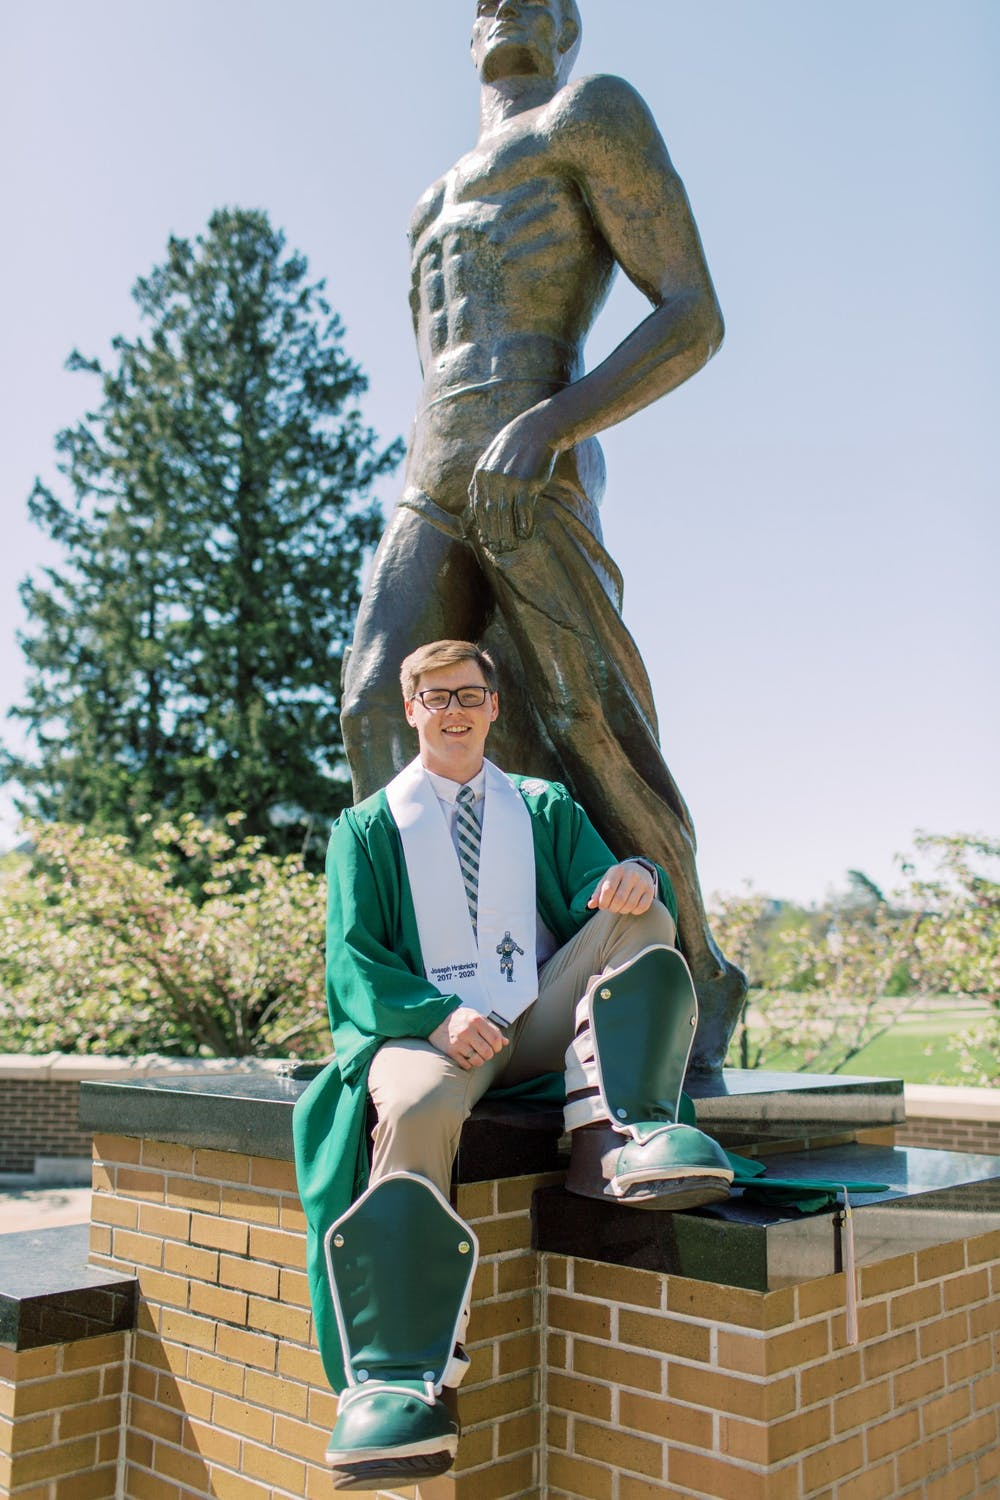 MSU alumni Joseph Hrabnicky poses in front of the Spartan Statue in his graduation gown and Sparty boots. Hrabnicky played Sparty since the second semester of his freshman year at MSU.